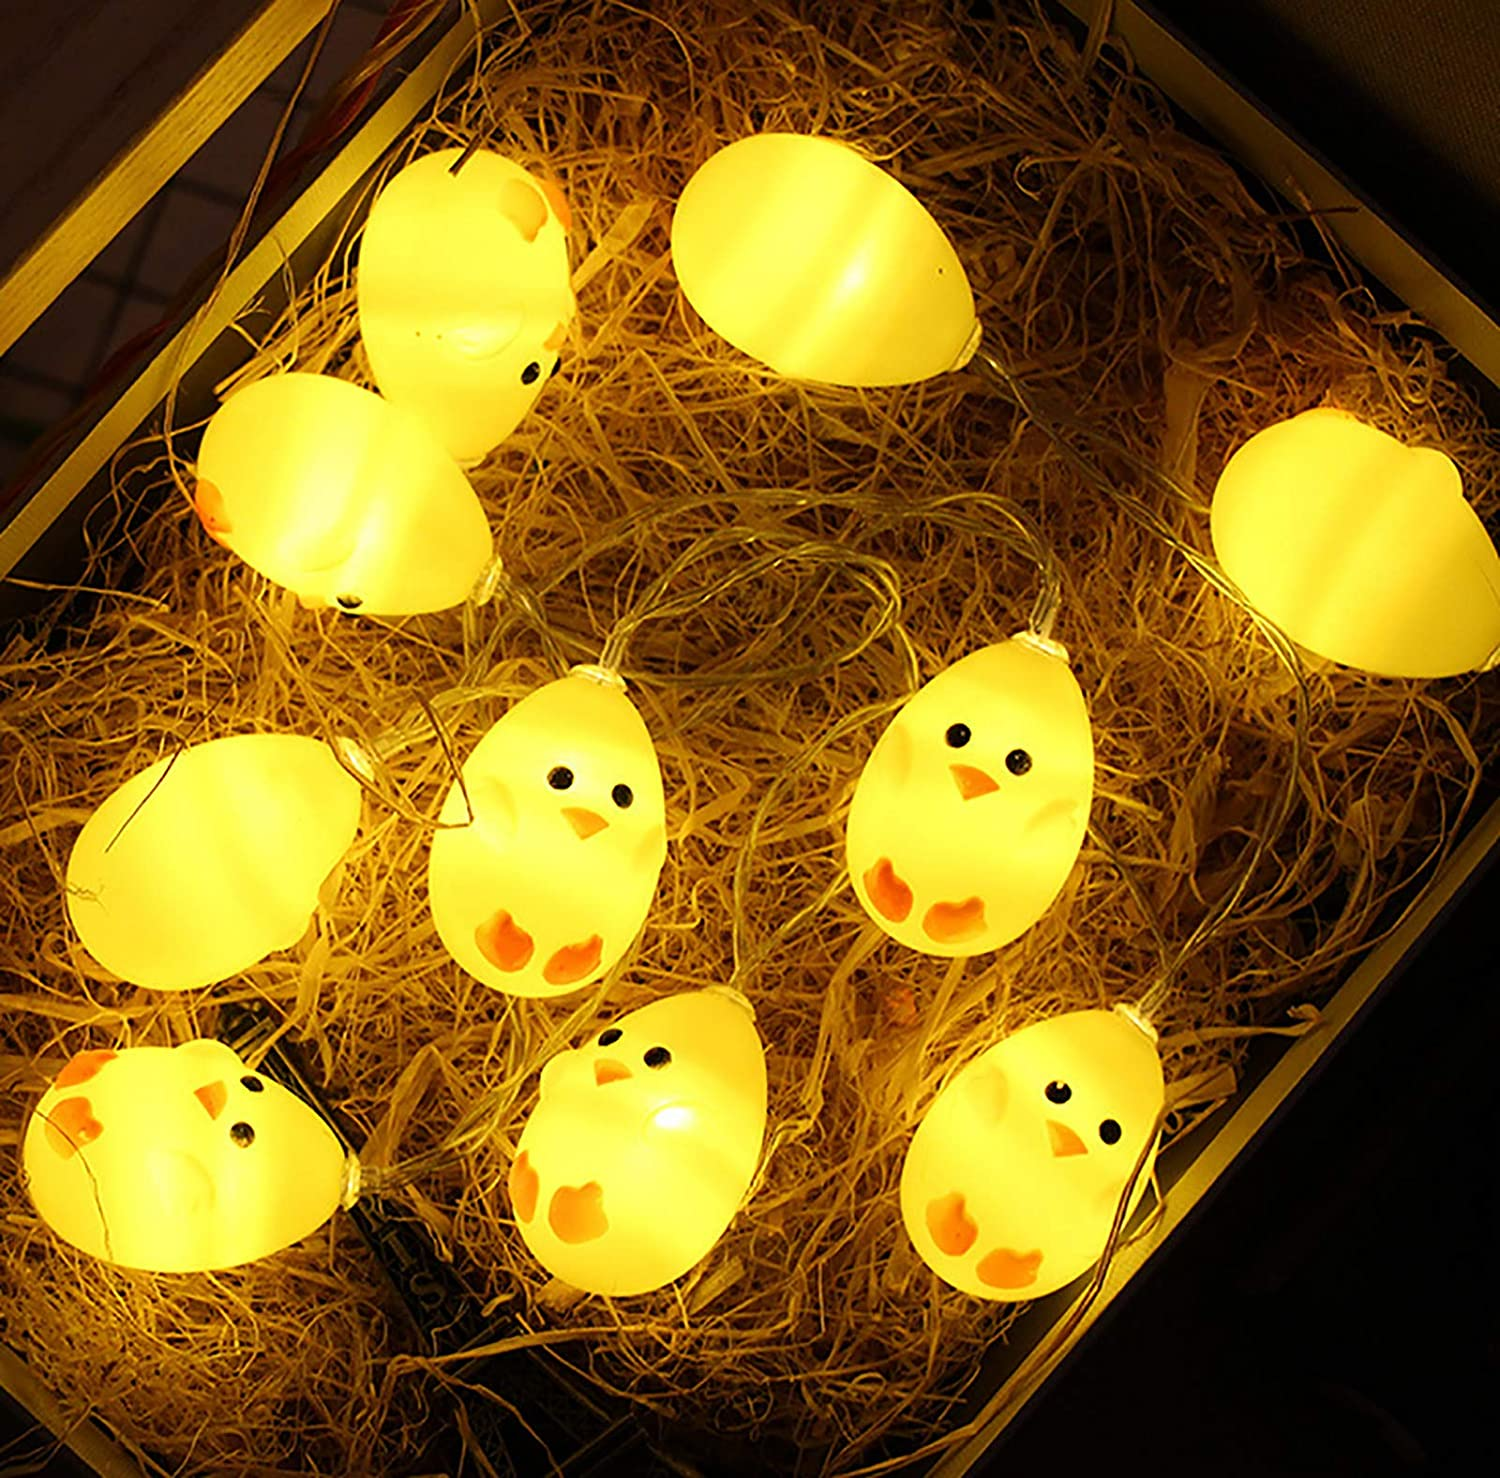 Little Yellow Chicken String Light for Easter, Cute Animal Chicken Decoration Lights, Battery Operated 1.5M 10 LED Lights for Home Decor, Party, Birthday, Camping, Kid Bedside lamp (Yellow Warm light)